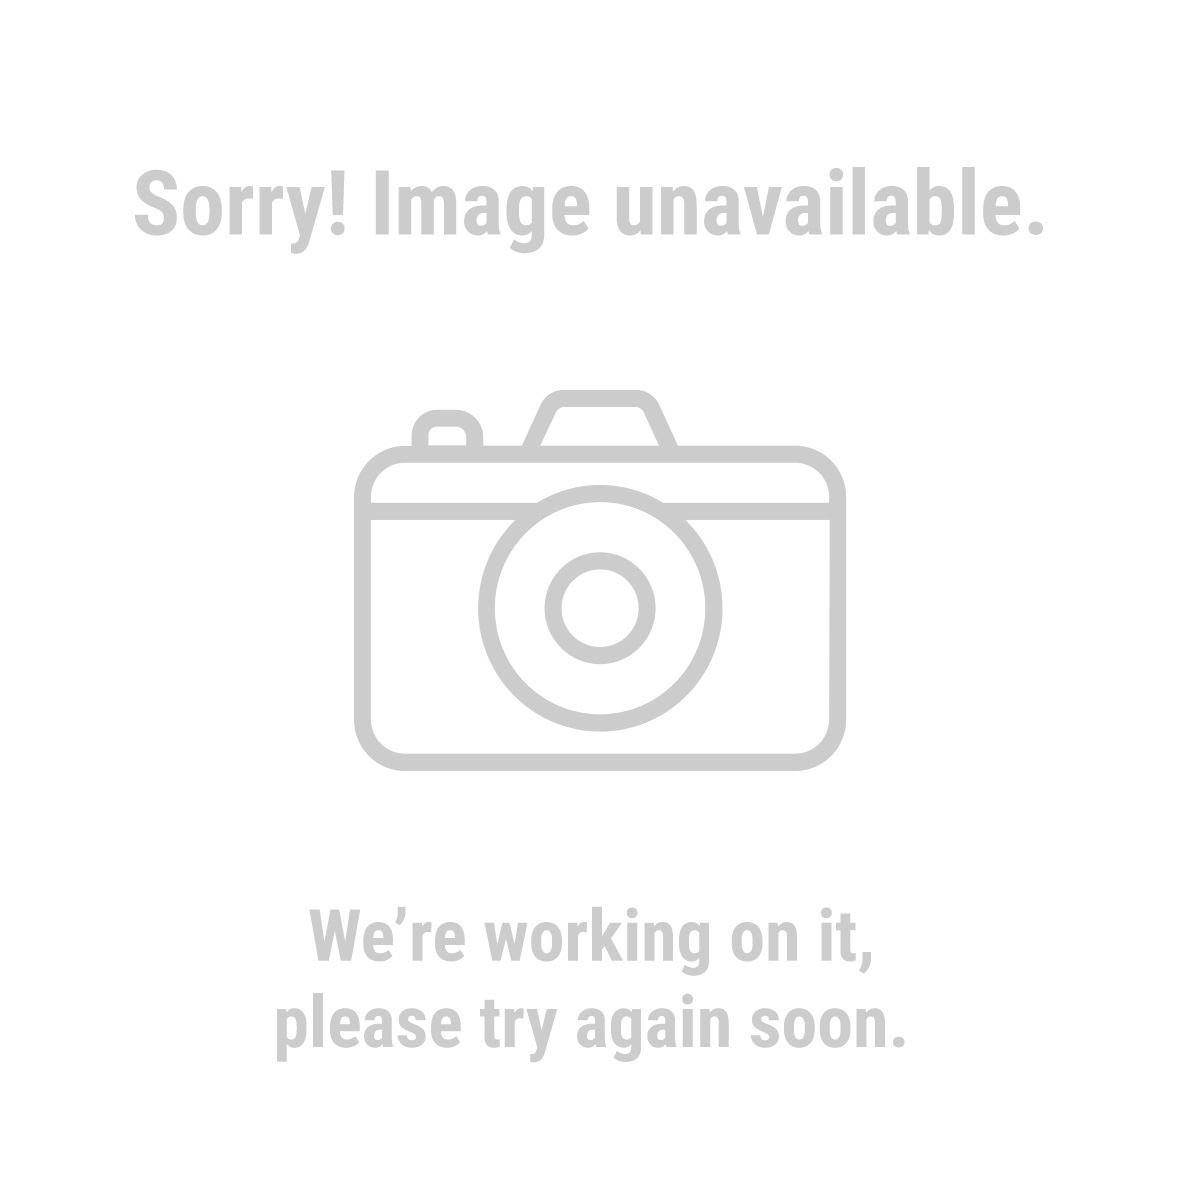 Central Pneumatic® 68149 1.5 Horsepower, 6 Gallon, 150 PSI Professional Oilless Air Compressor